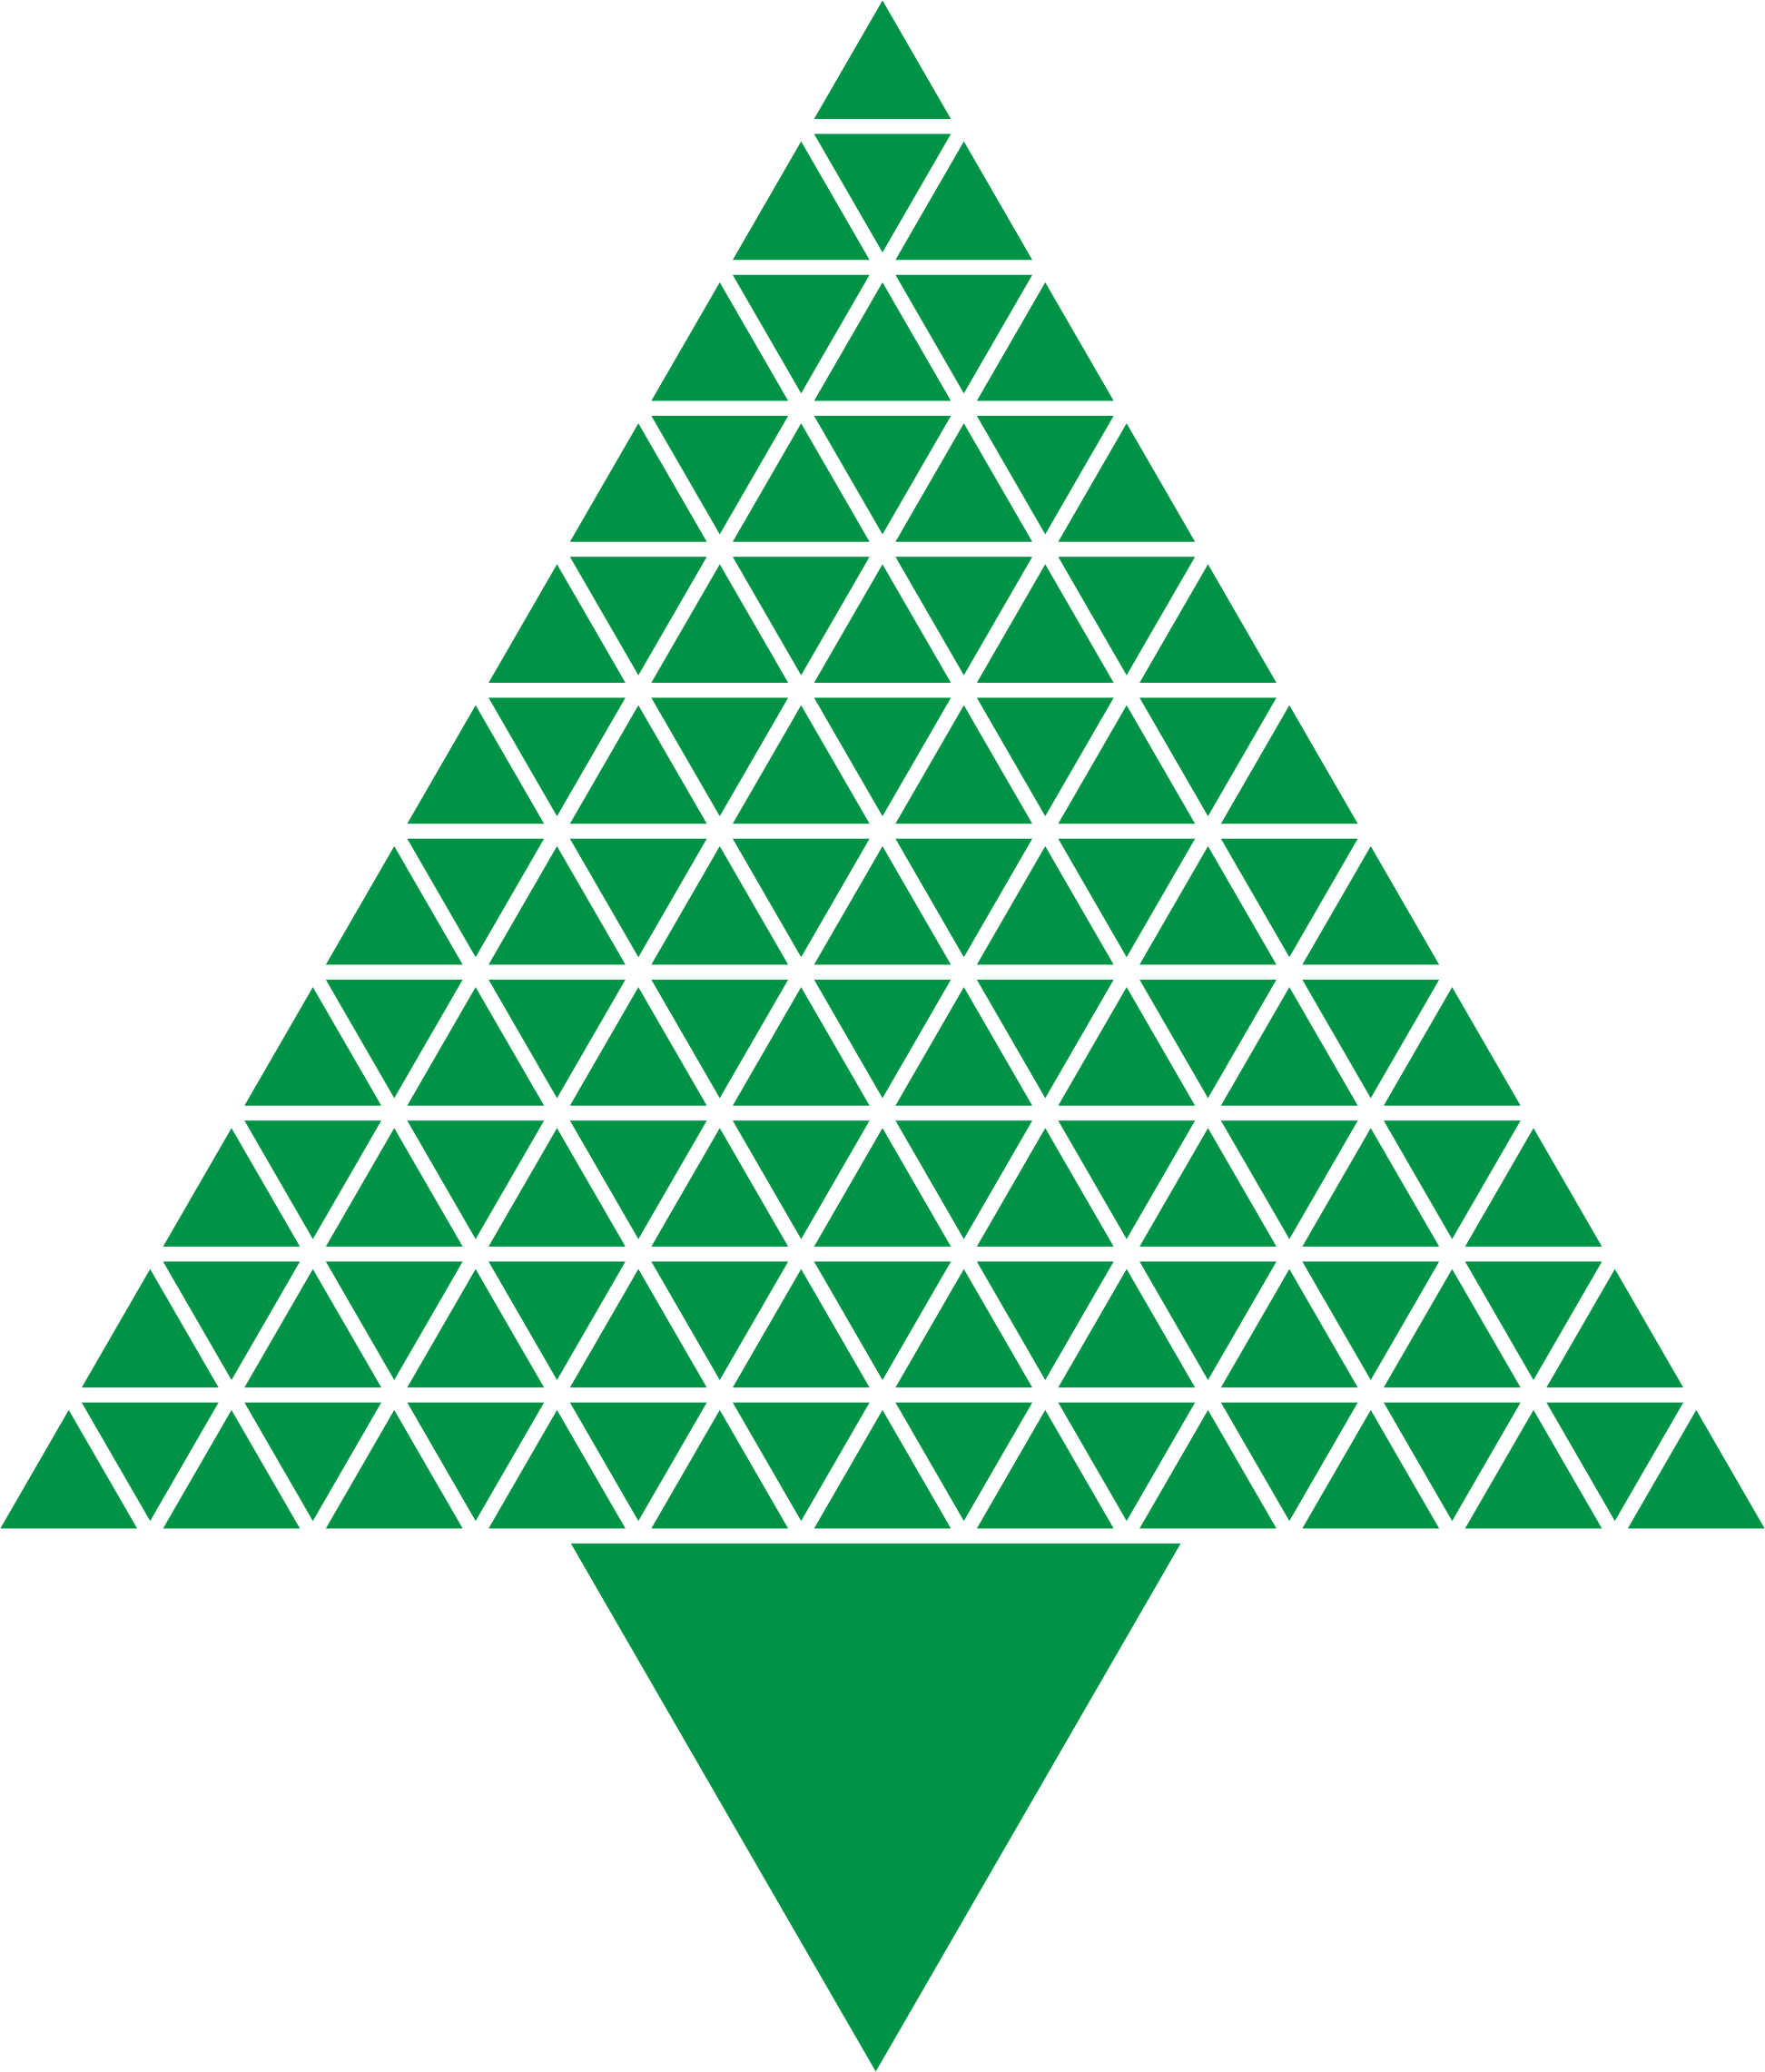 clip freeuse download Triangular clipart. Abstract christmas tree green